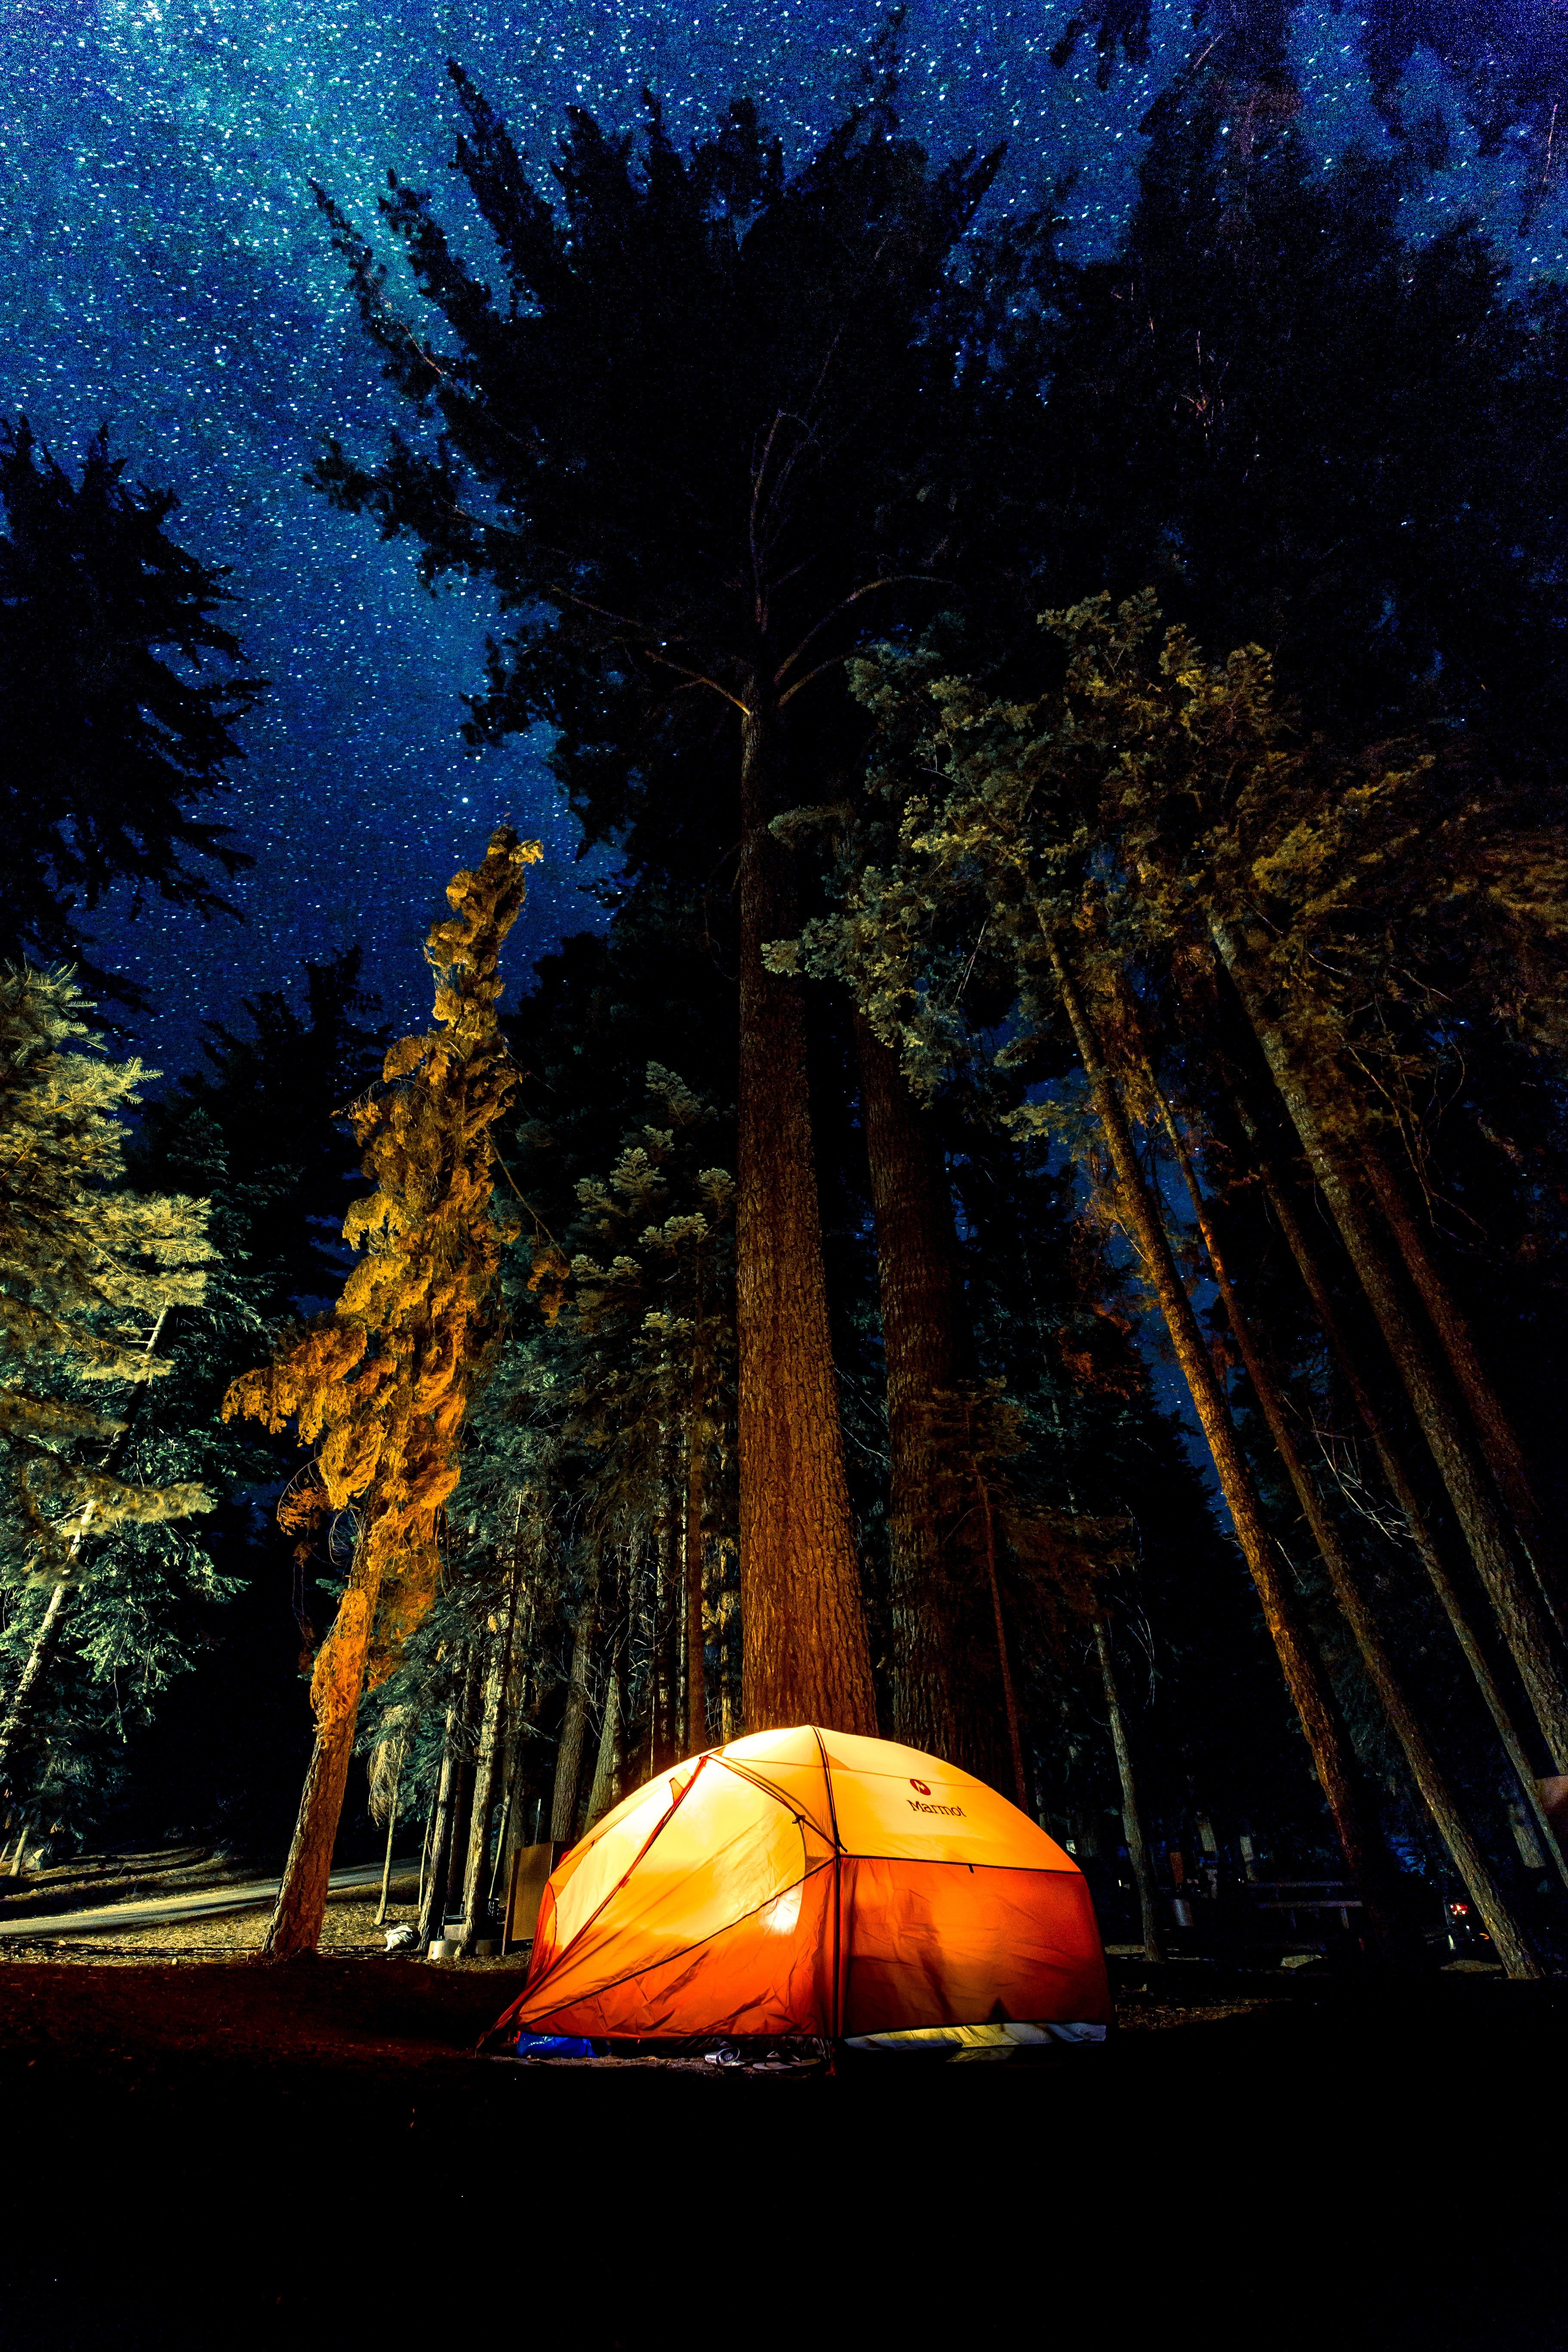 A lit tent in the forest.   Source: Unsplash